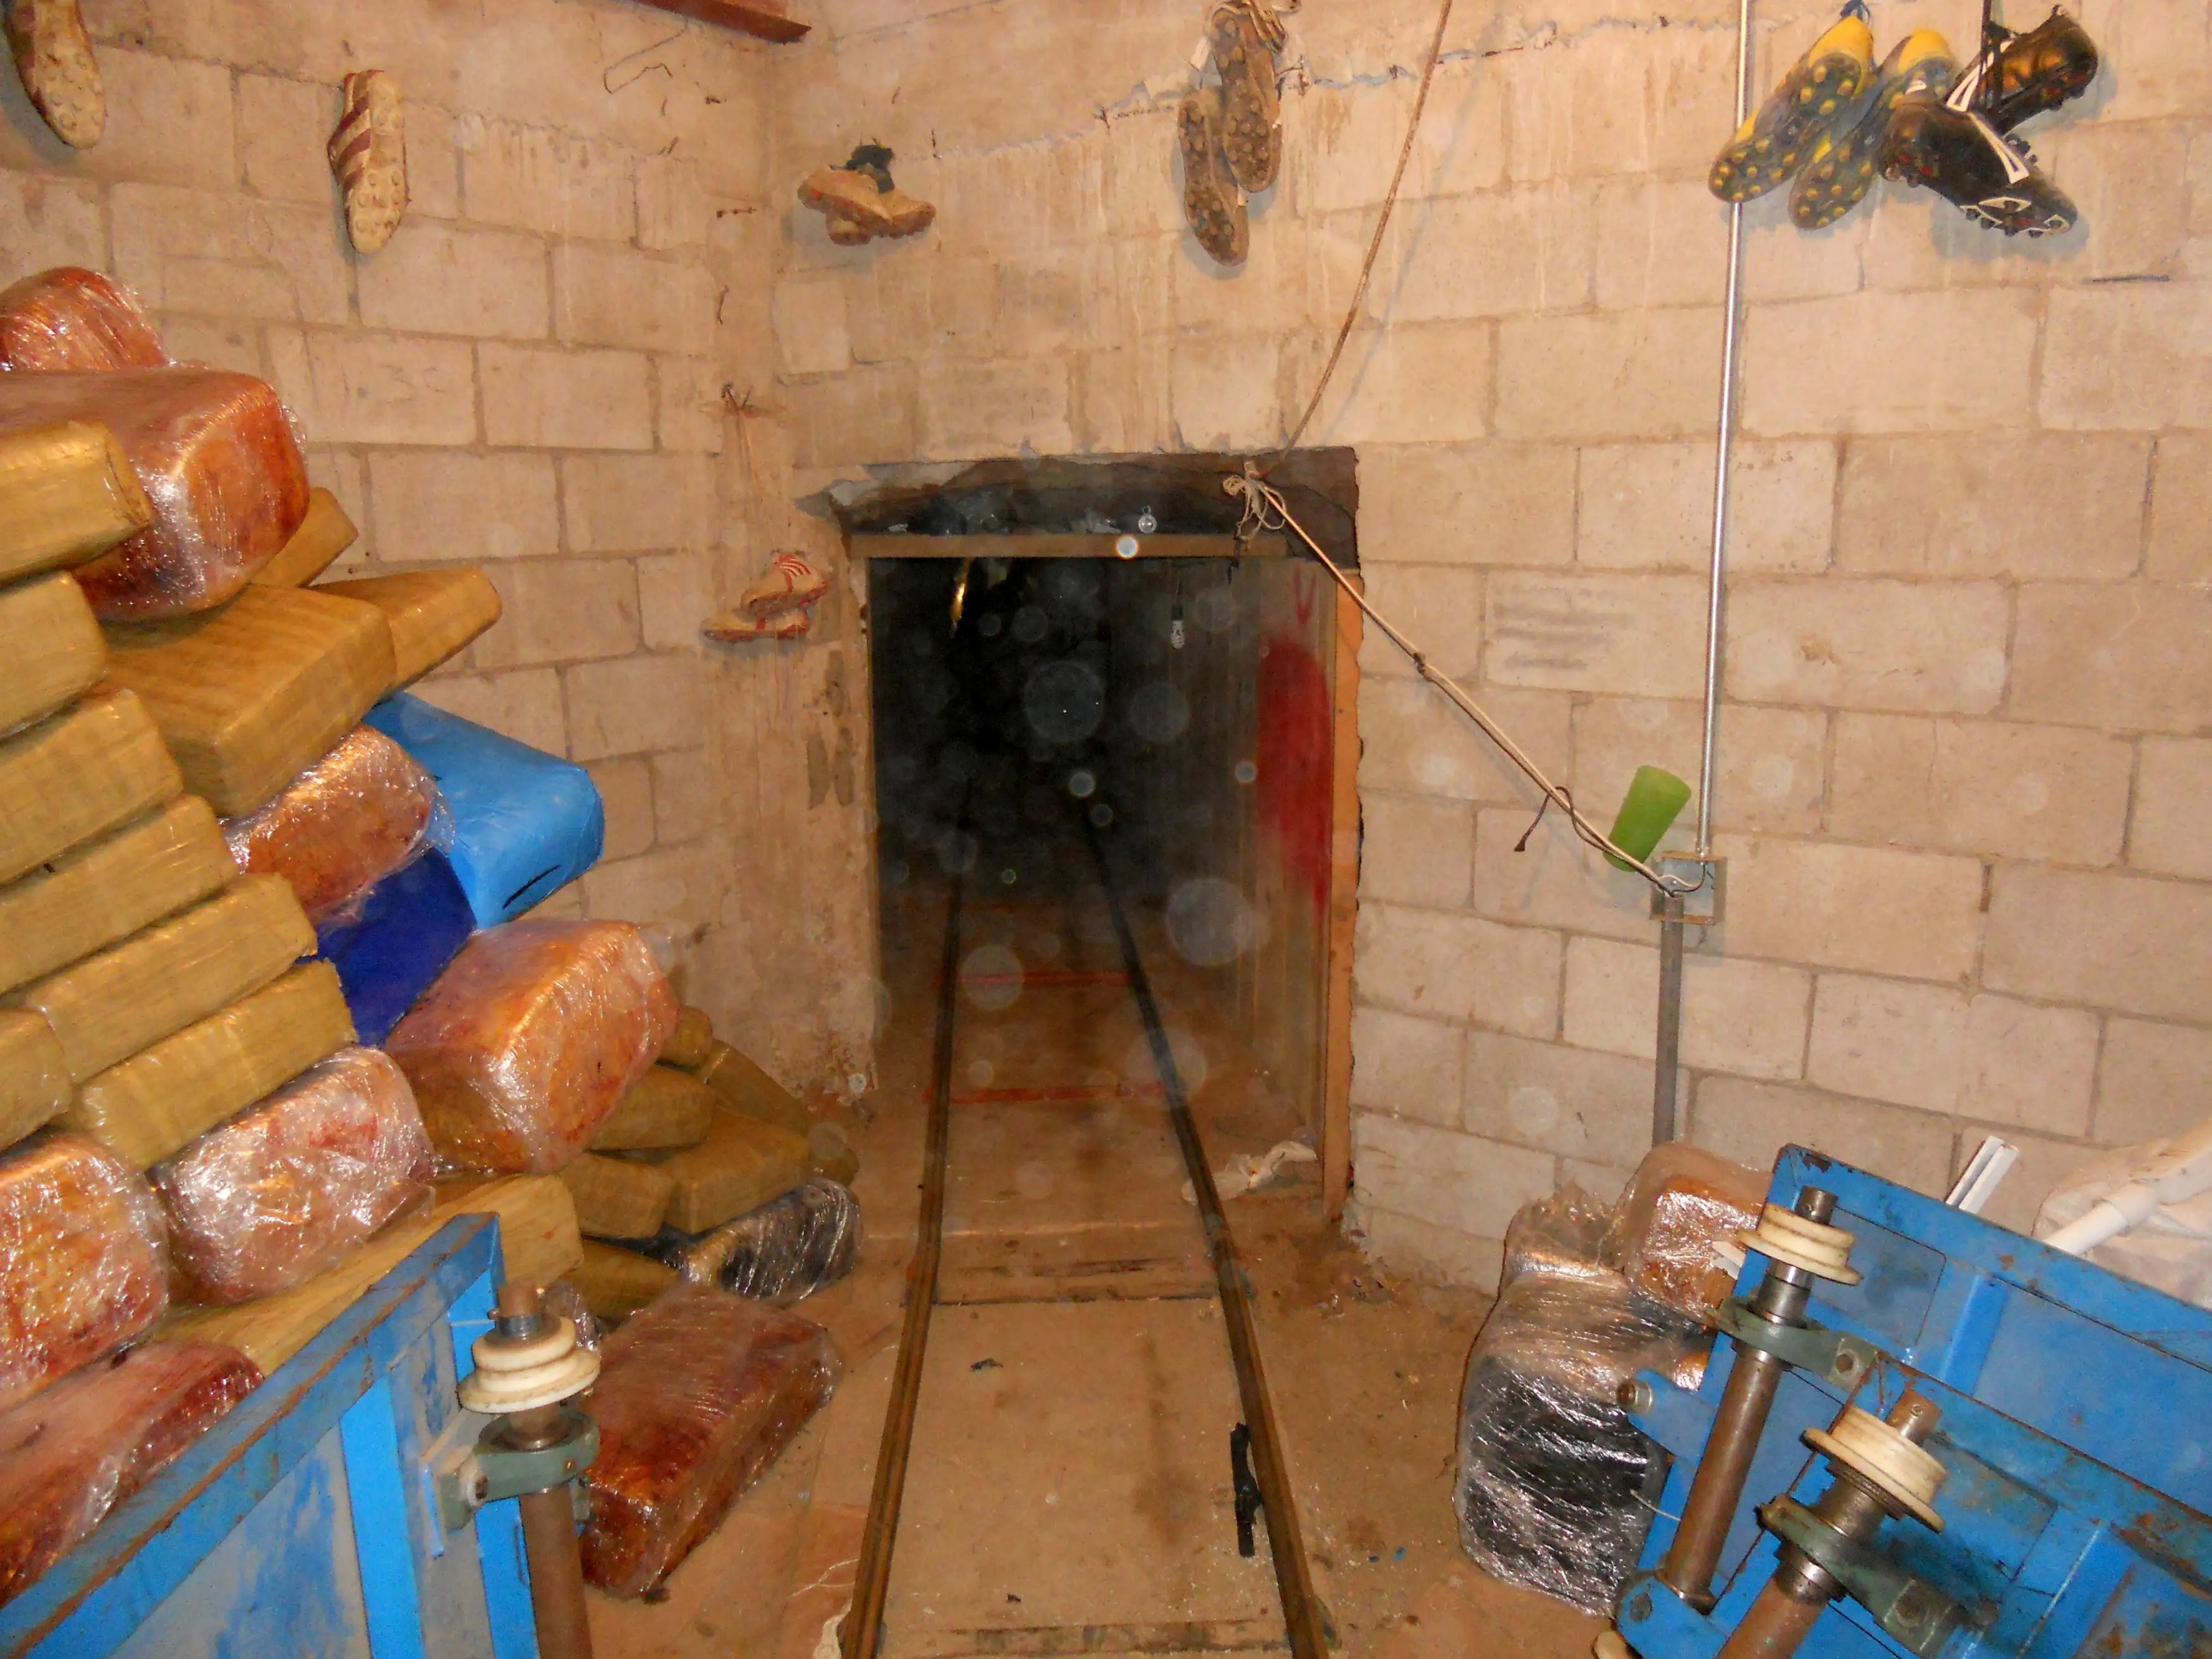 Inside Mexican drug cartel narco tunnels on the US border